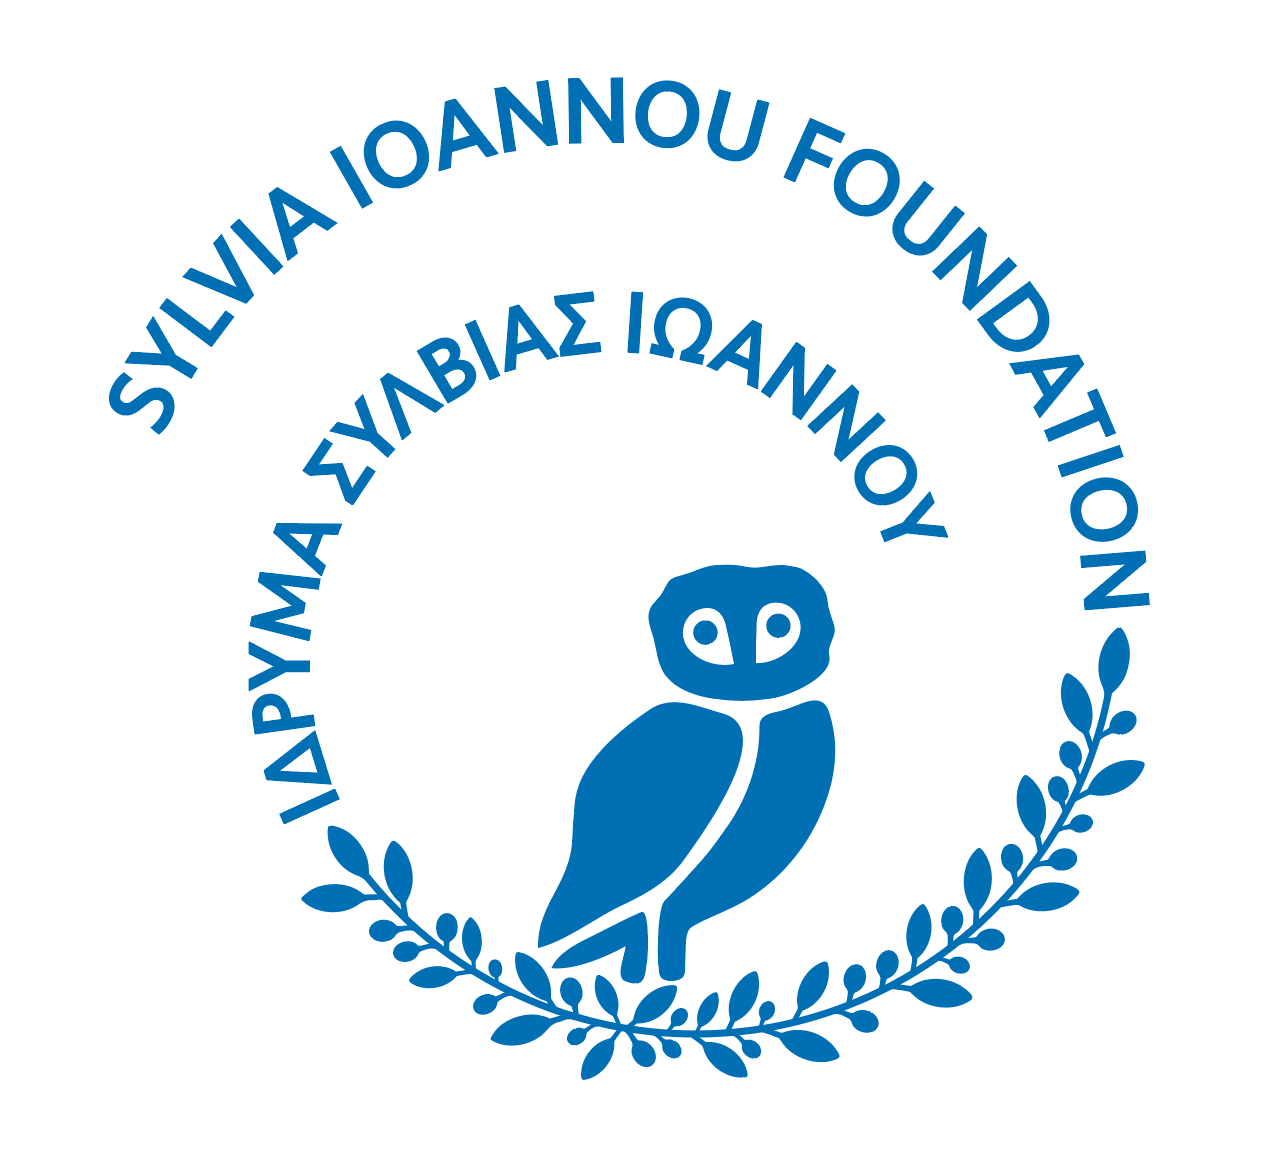 The new Sylvia Ioannou Foundation logo